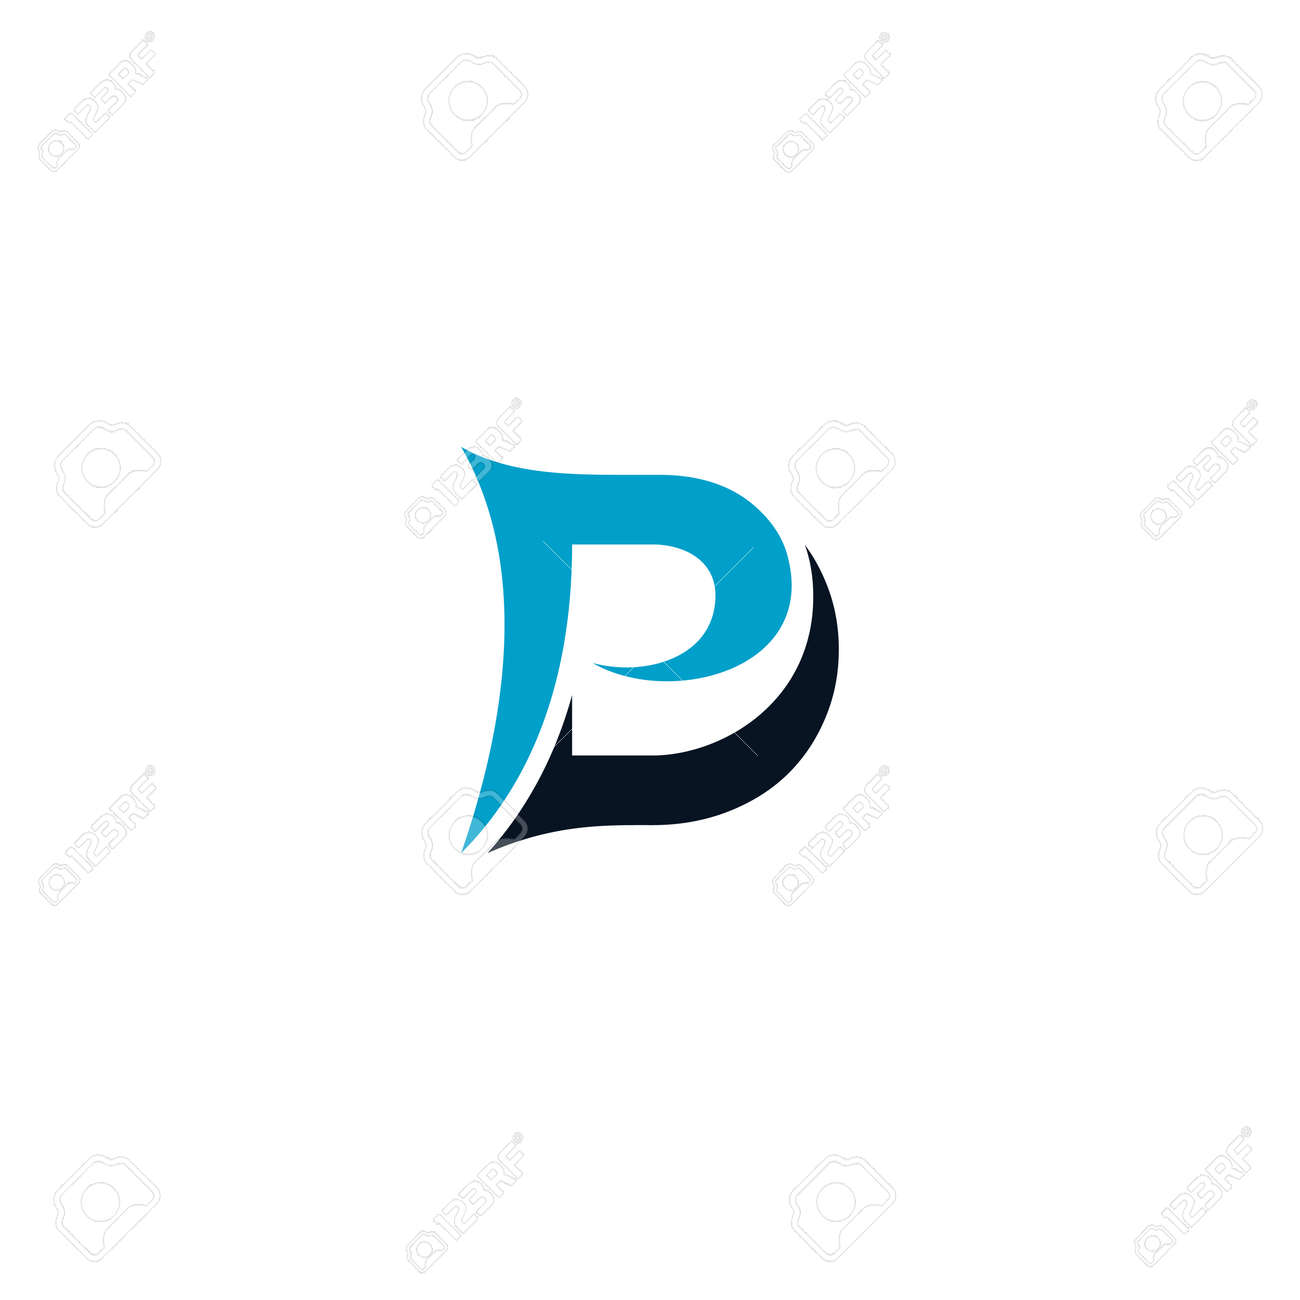 Initial Letter Dp Logo Design Vector Unique Modern Elegant Royalty Free Cliparts Vectors And Stock Illustration Image 136733615